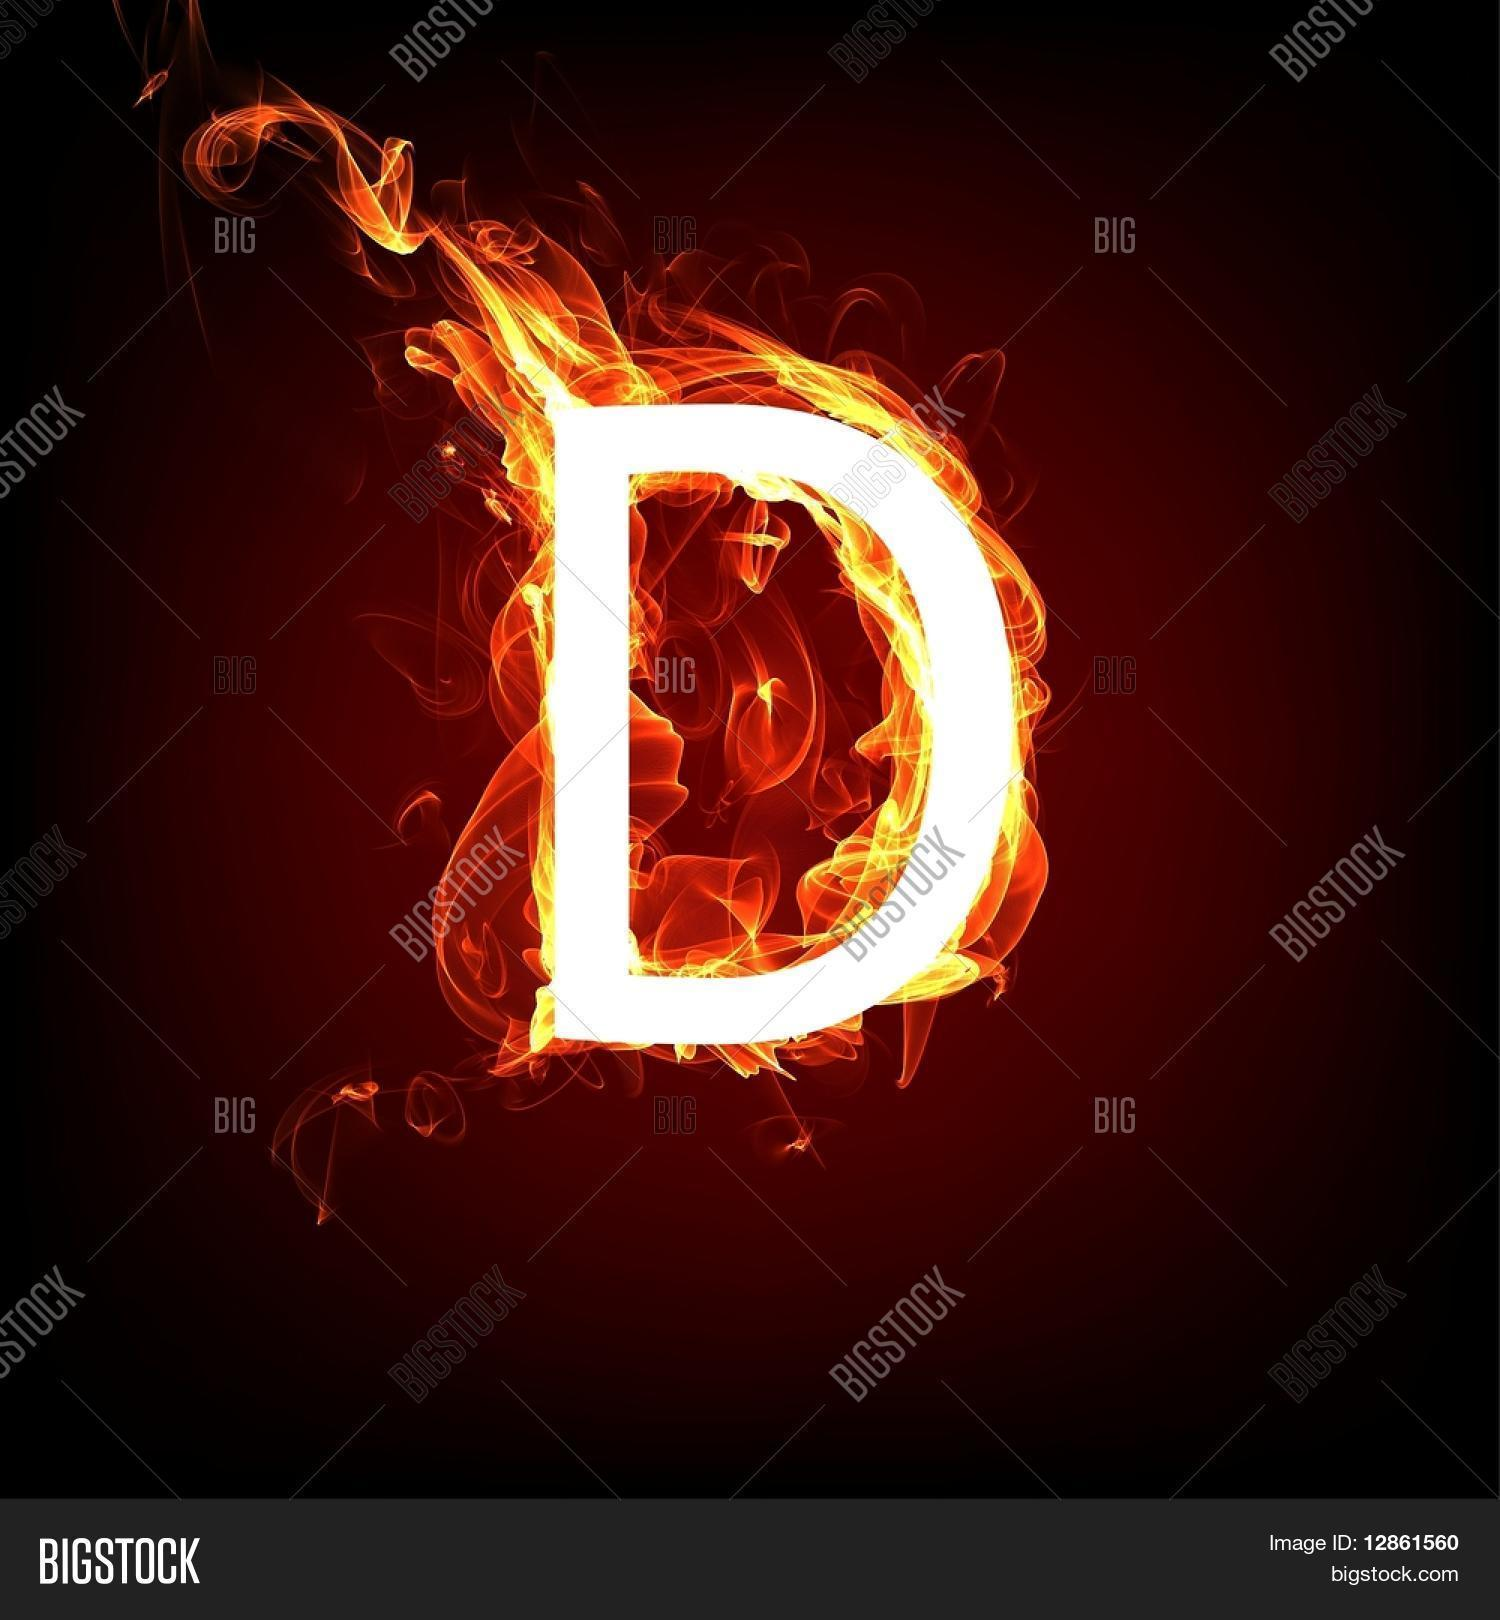 Fiery Font Hot Flame Image Photo Free Trial Bigstock